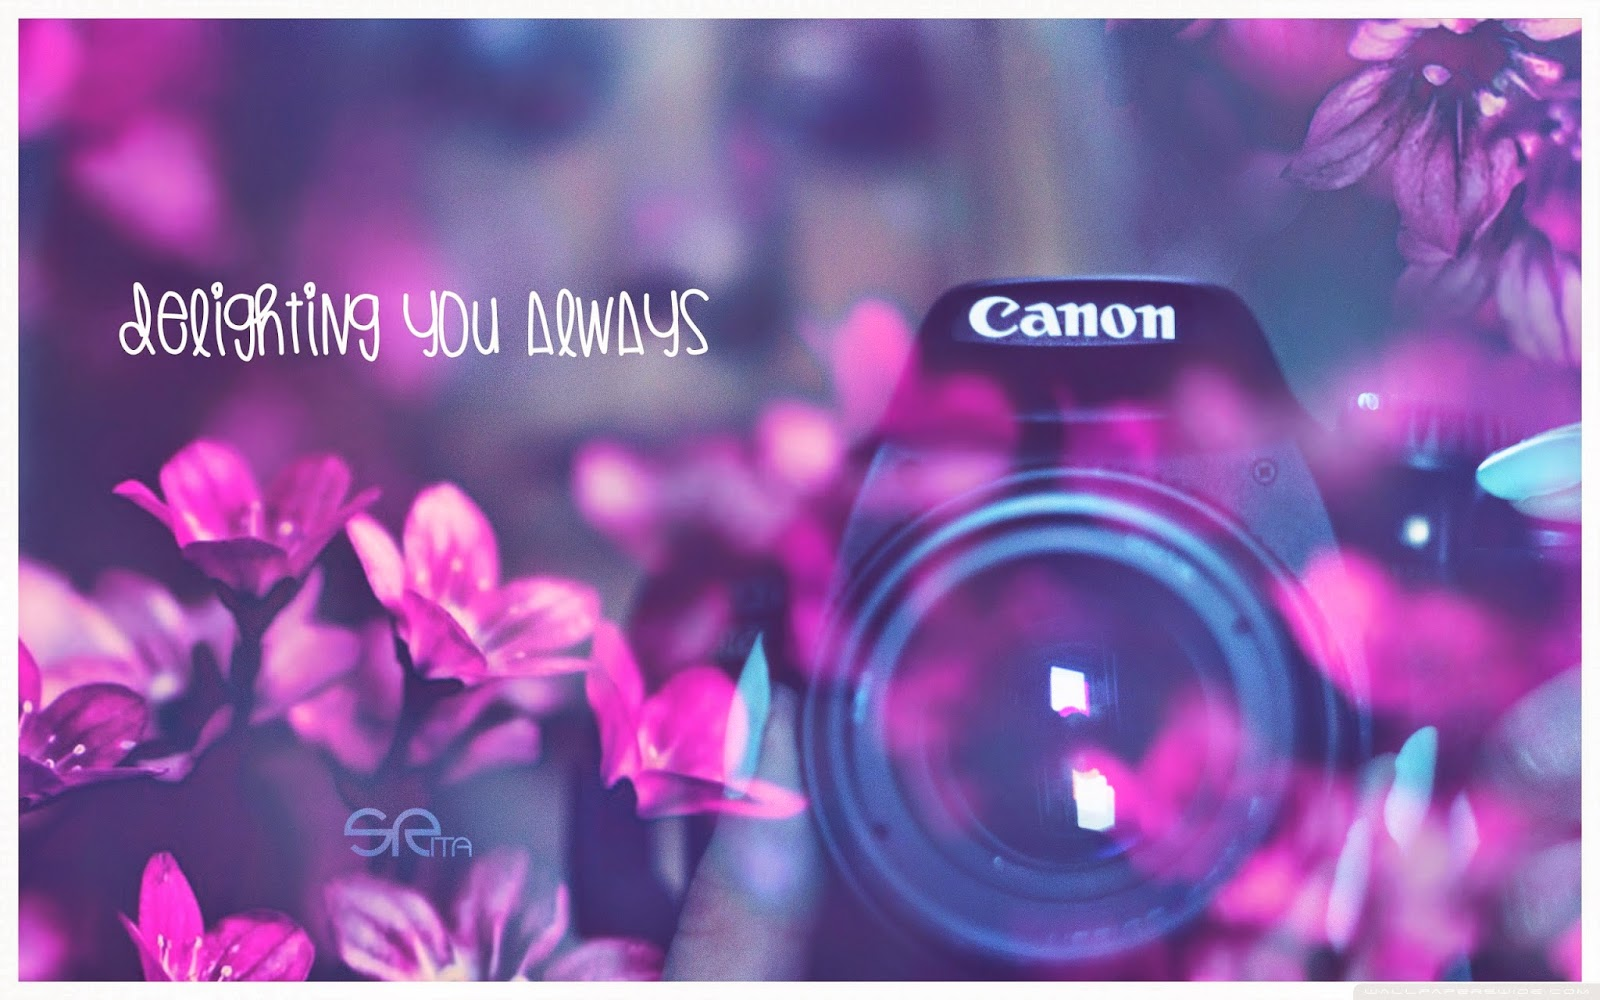 canon_delighting_you_always-wallpaper-2560x1600